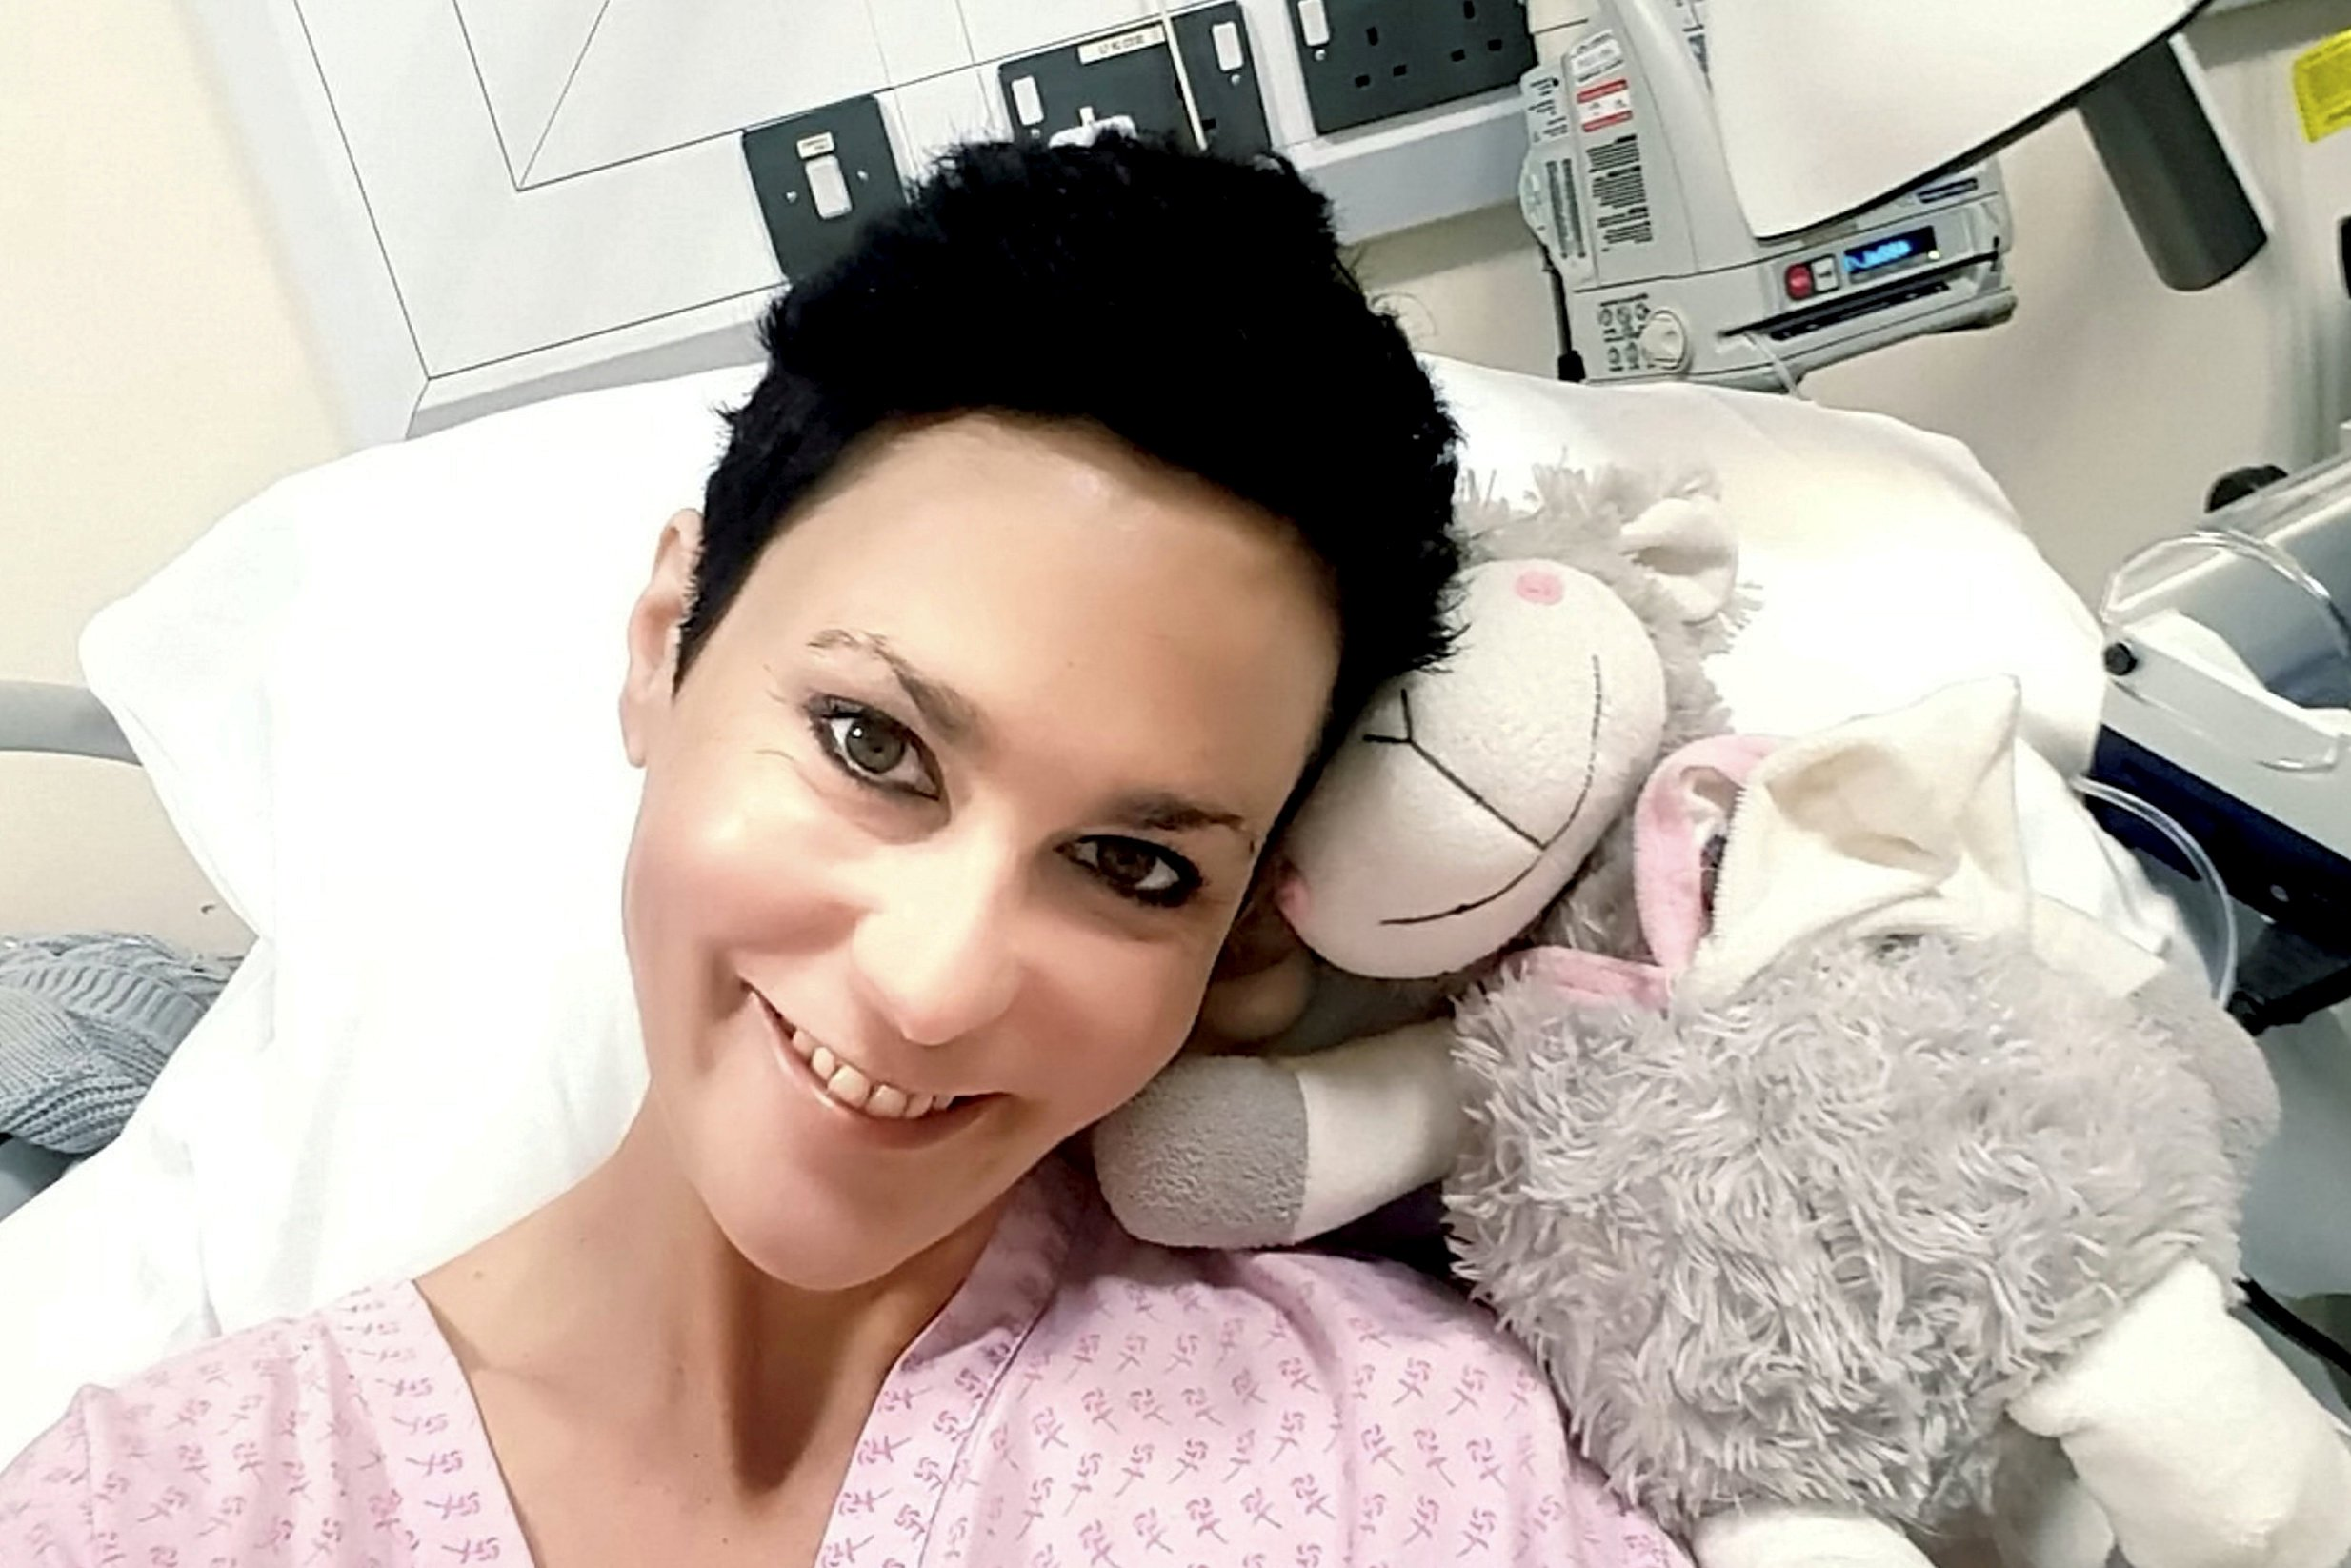 Laura Harris receiving treatment at hospital. (file photo) SWPLcancer; Tributes paid to oncology nurse forced to fundraise for treatment not available to her on NHS after she died.